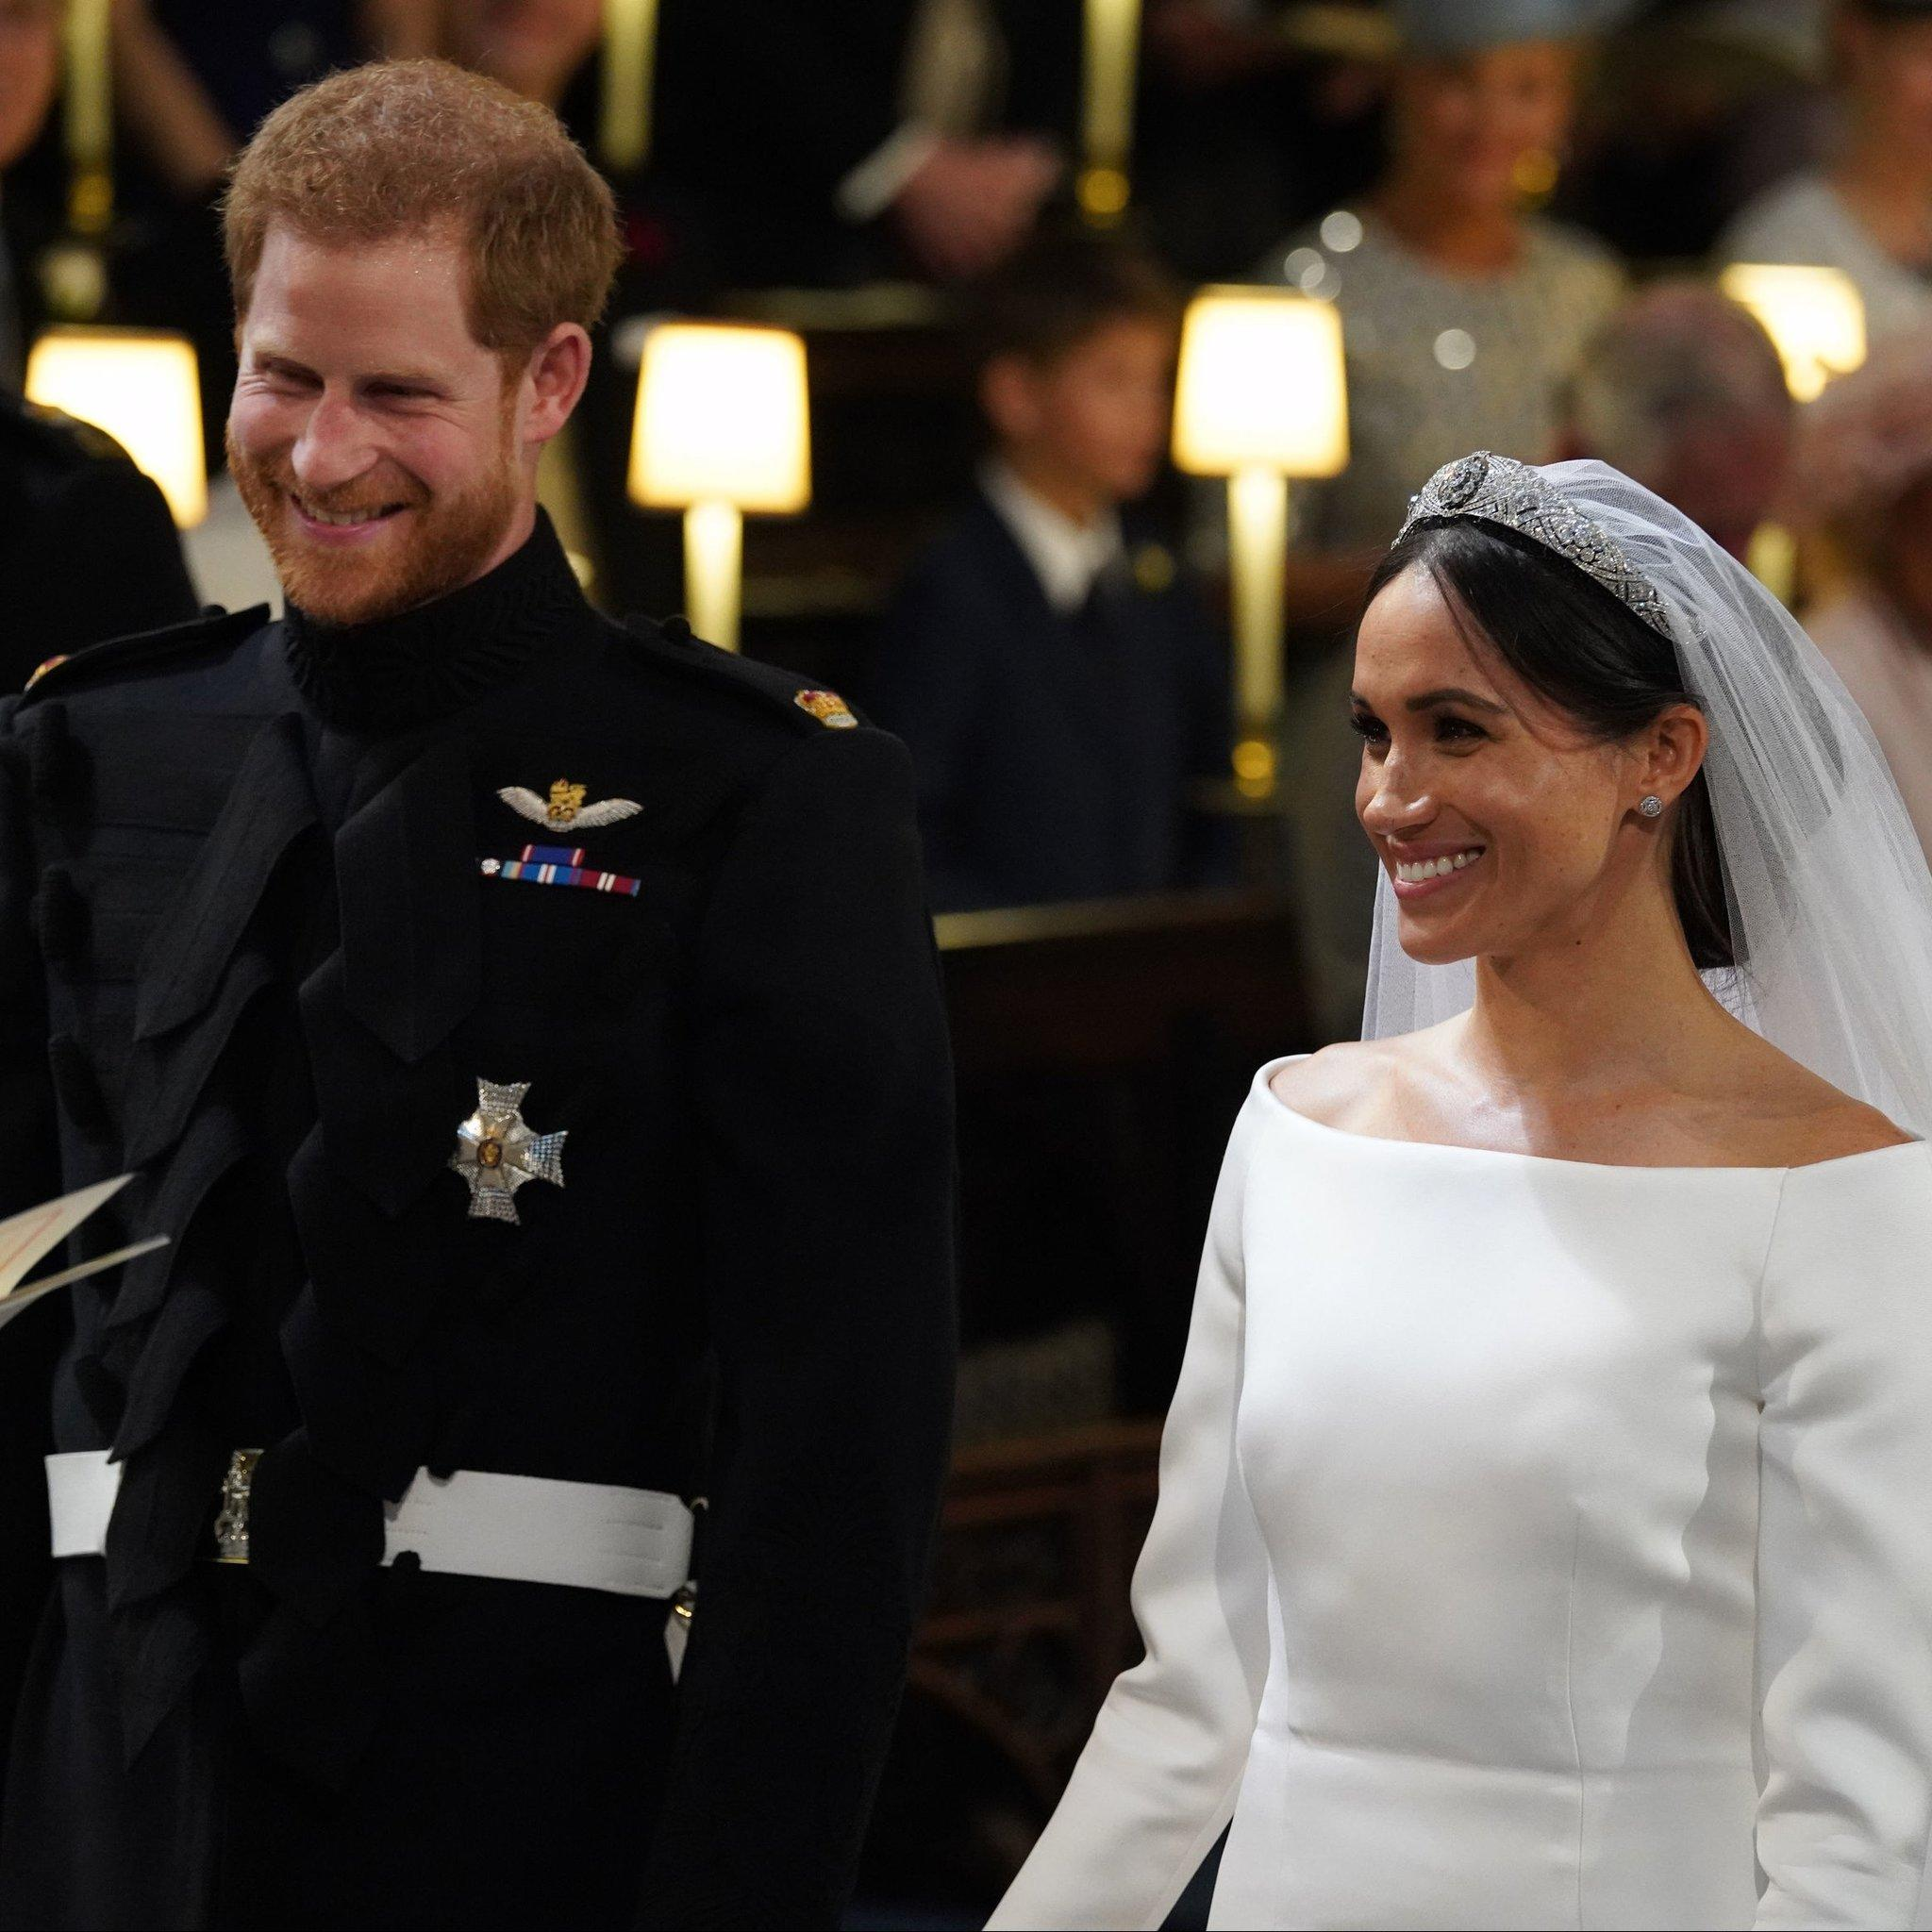 Royal Wedding Cost.How Much Did The Royal Wedding Cost You Ll Gasp At The